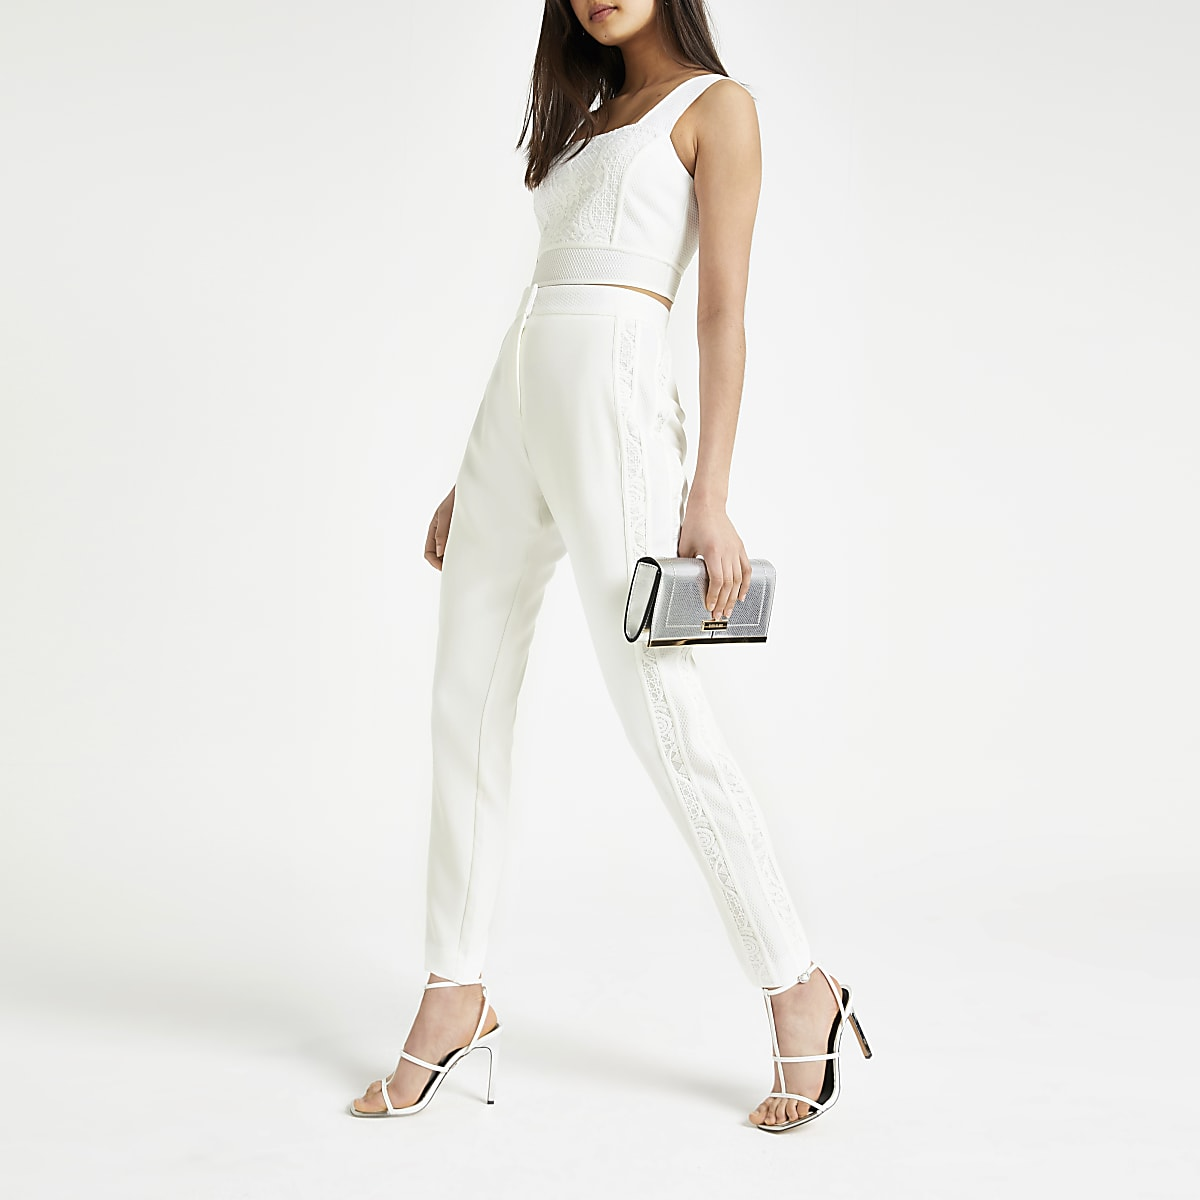 White lace cigarette trousers